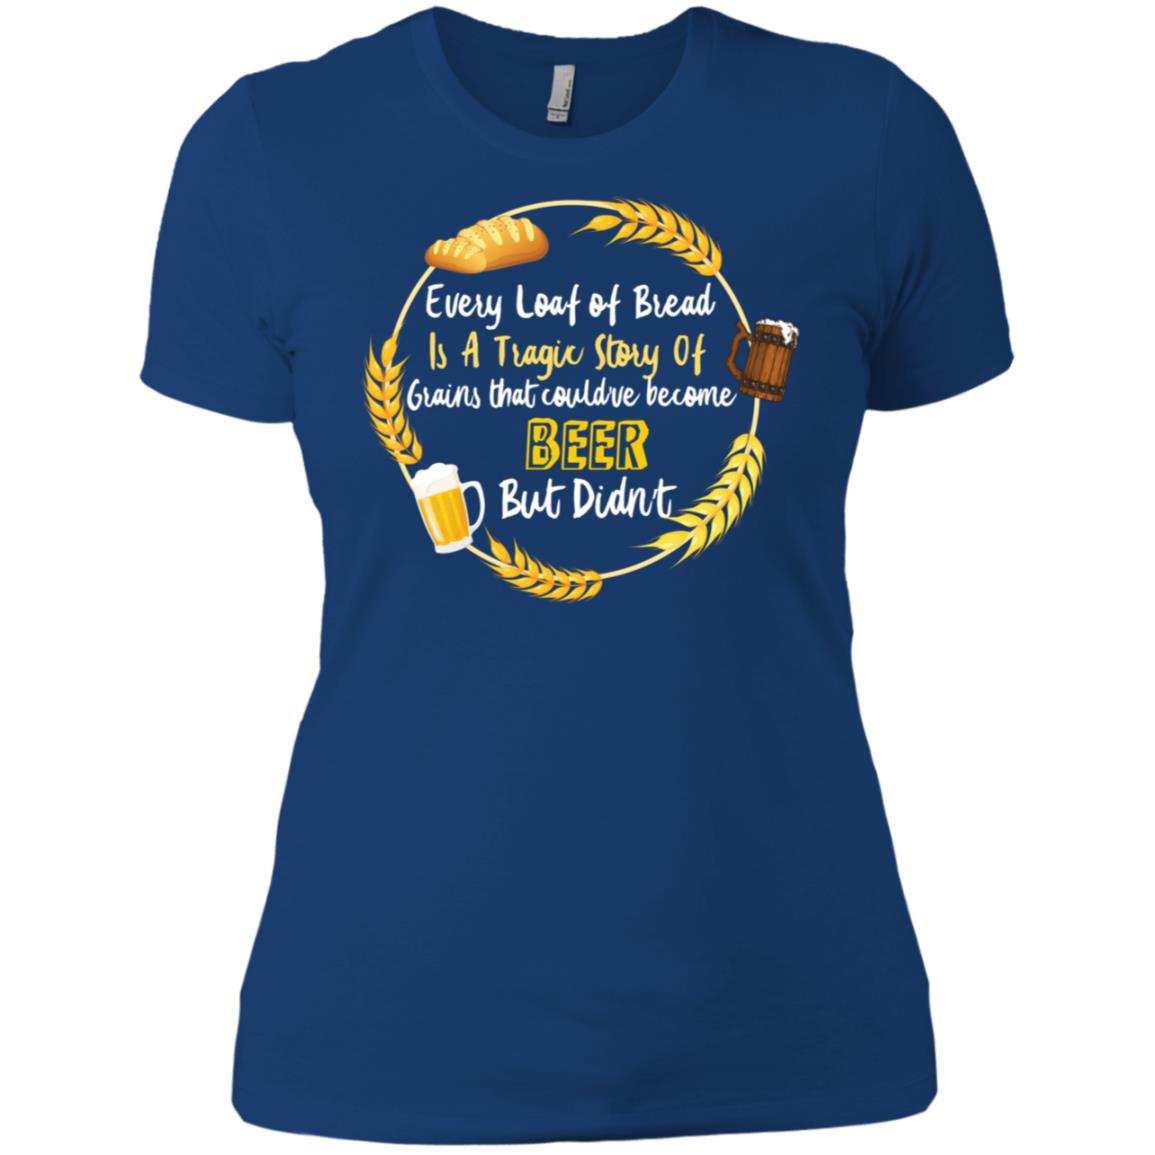 Beer Drinking for Women & Men Home Brewing Women Short Sleeve